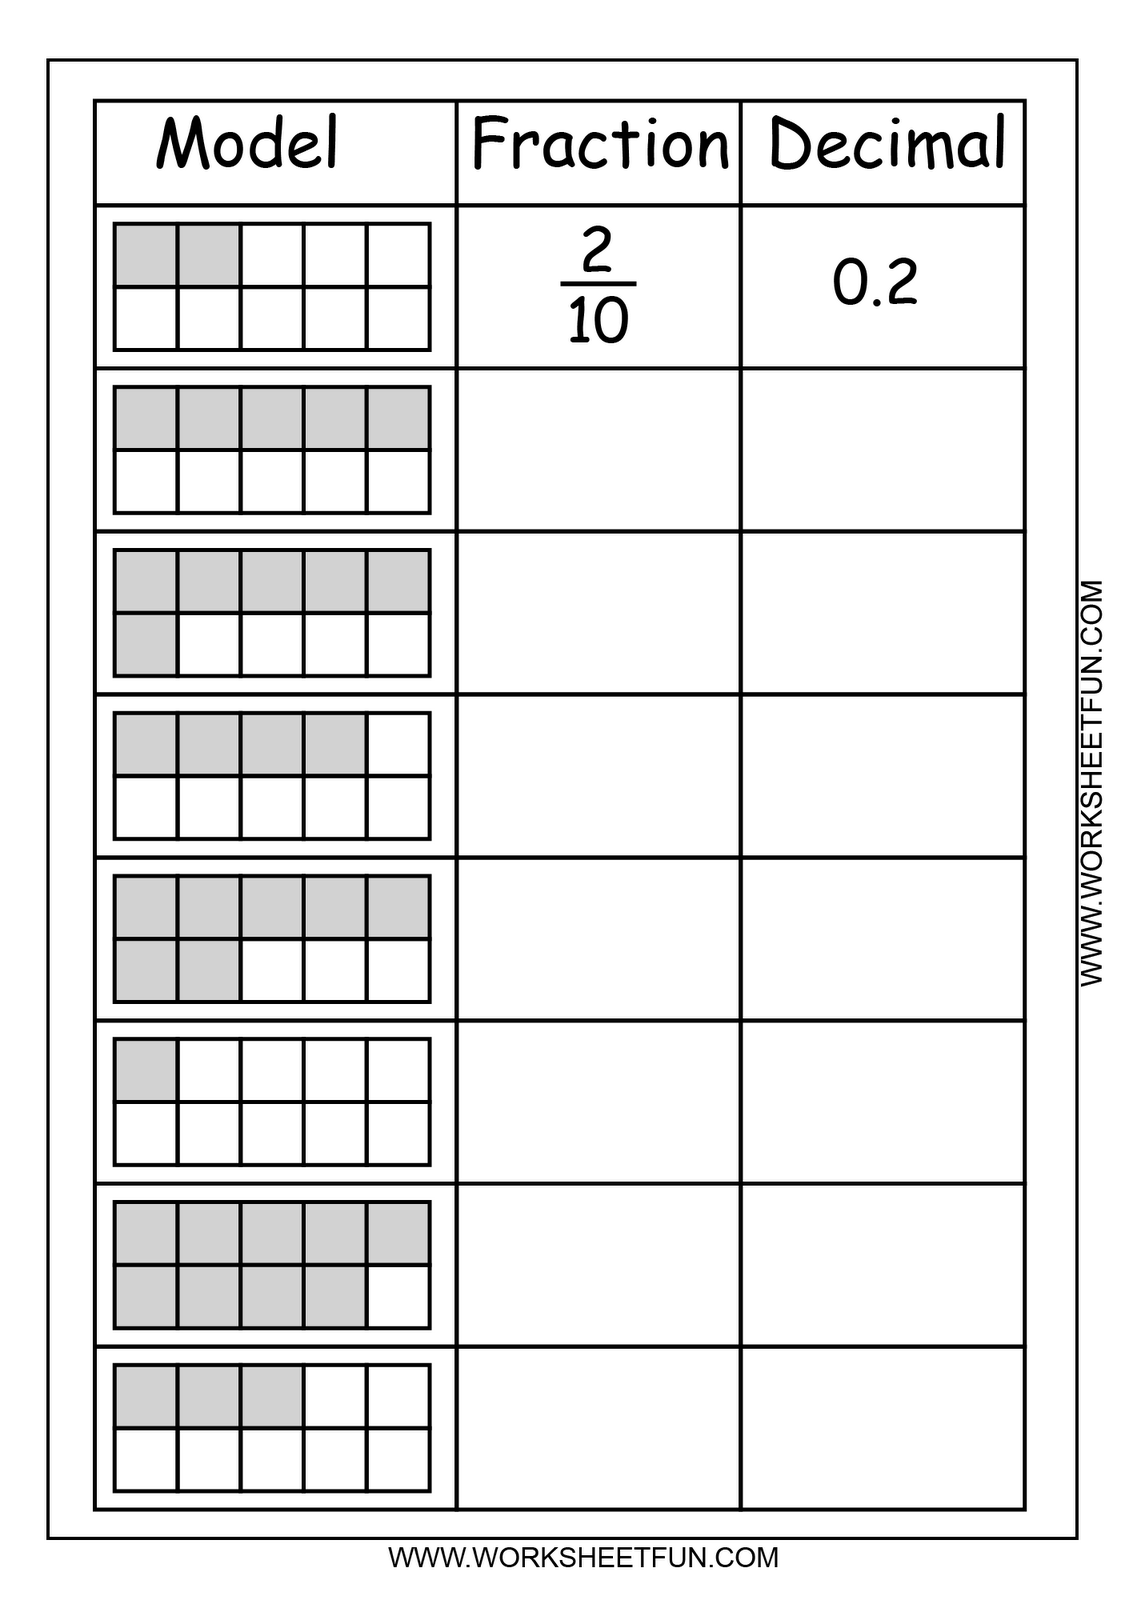 small resolution of Converting Fractions Into Decimals Worksheet 4th Grade   Printable  Worksheets and Activities for Teachers